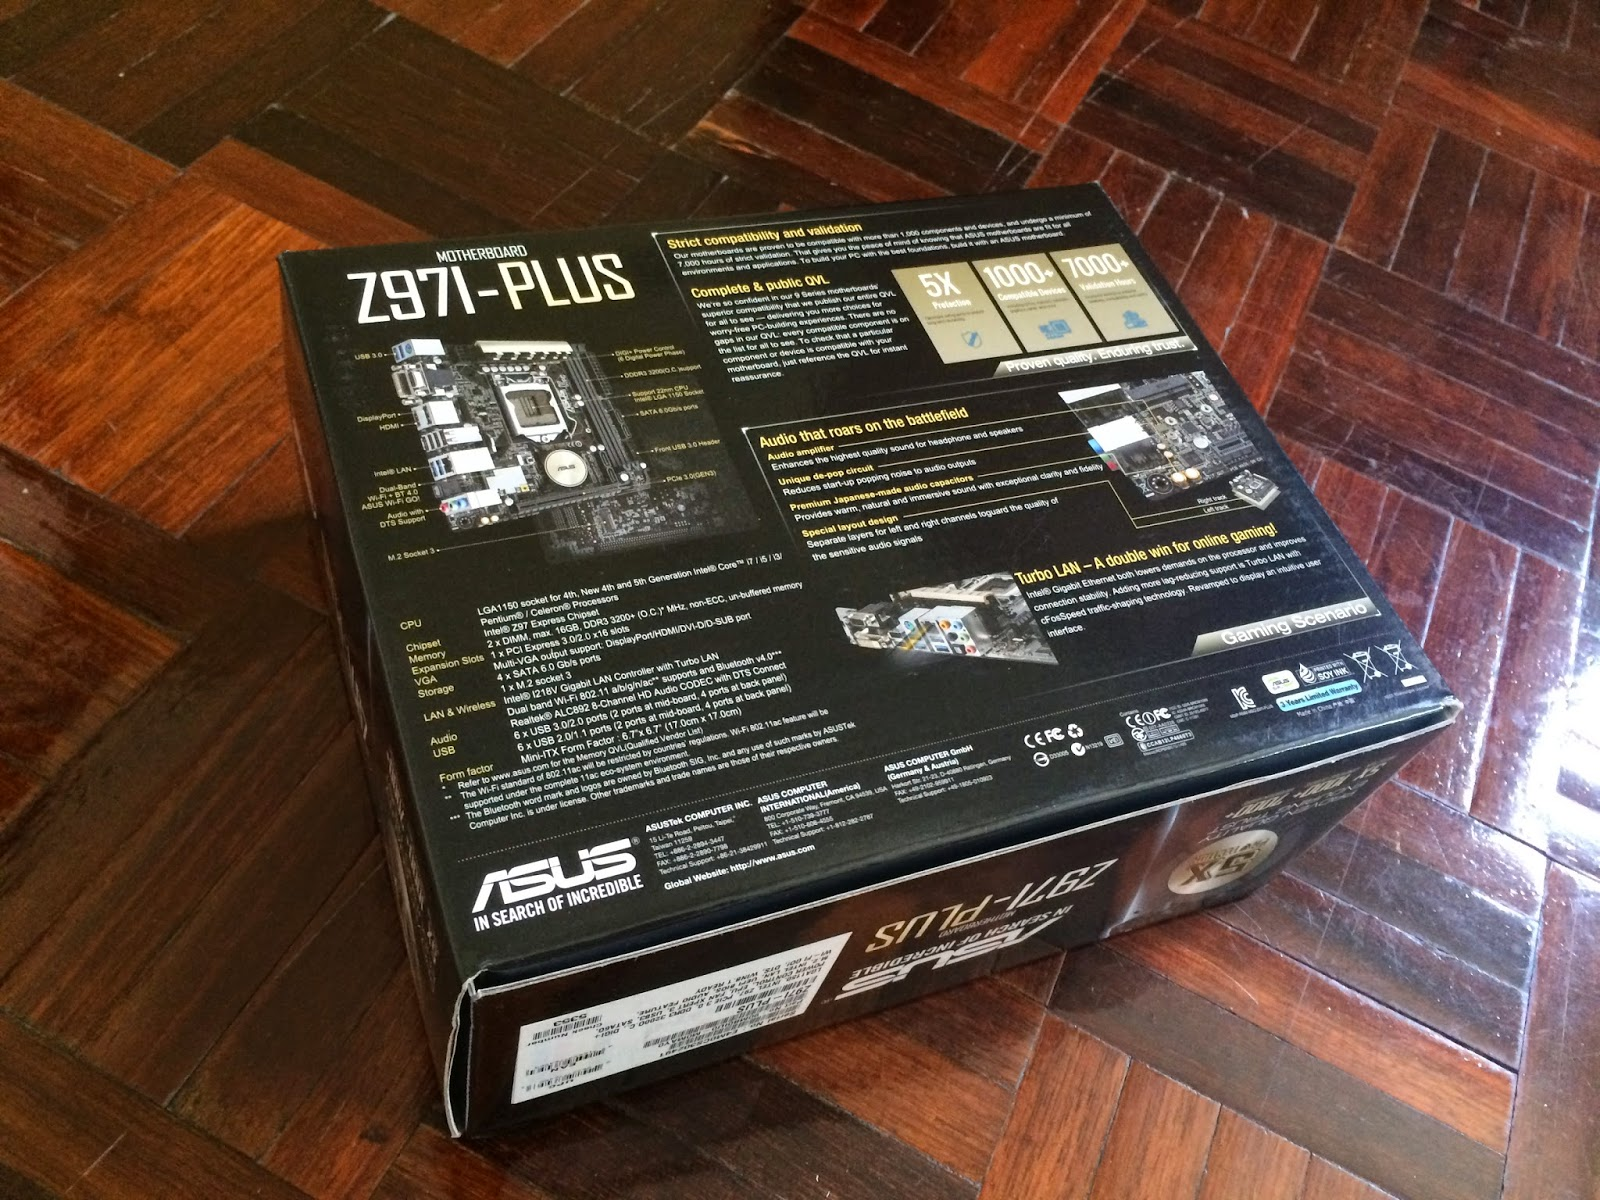 Unboxing & Review - ASUS Z97I-PLUS 142